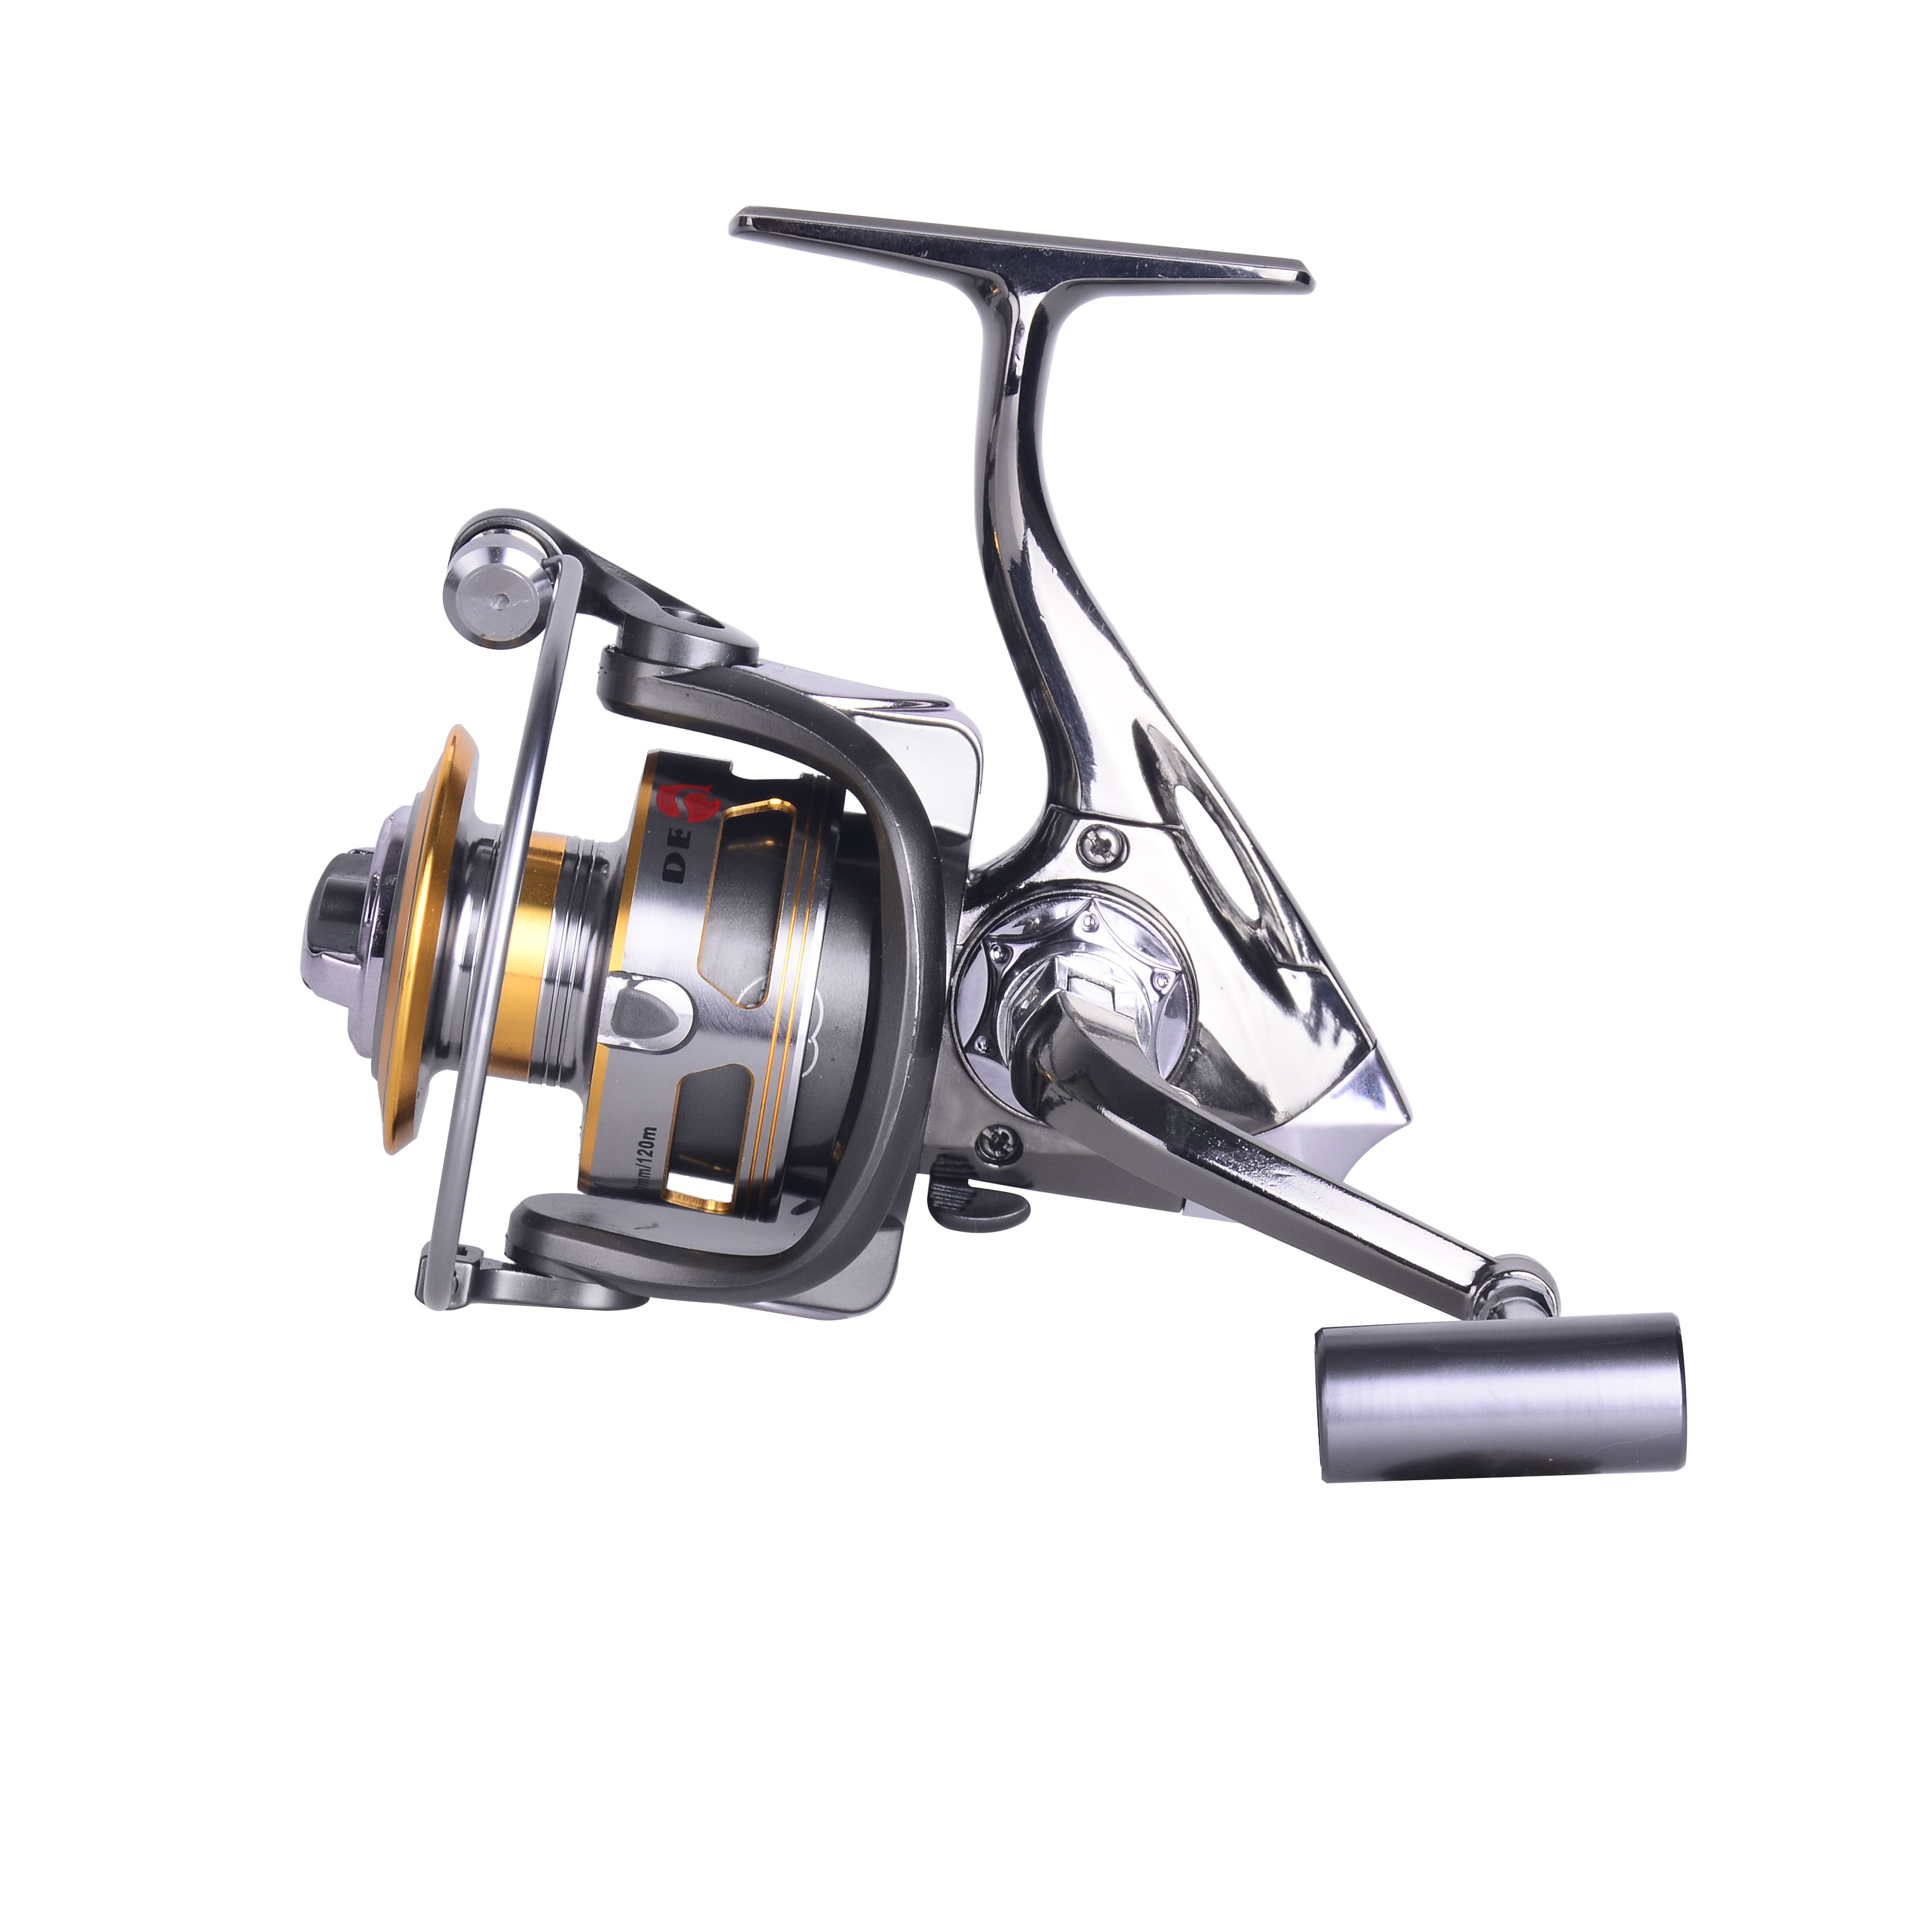 Alibaba Newly Promoted Metal DM2000-7000 Spinning Fishing Reel